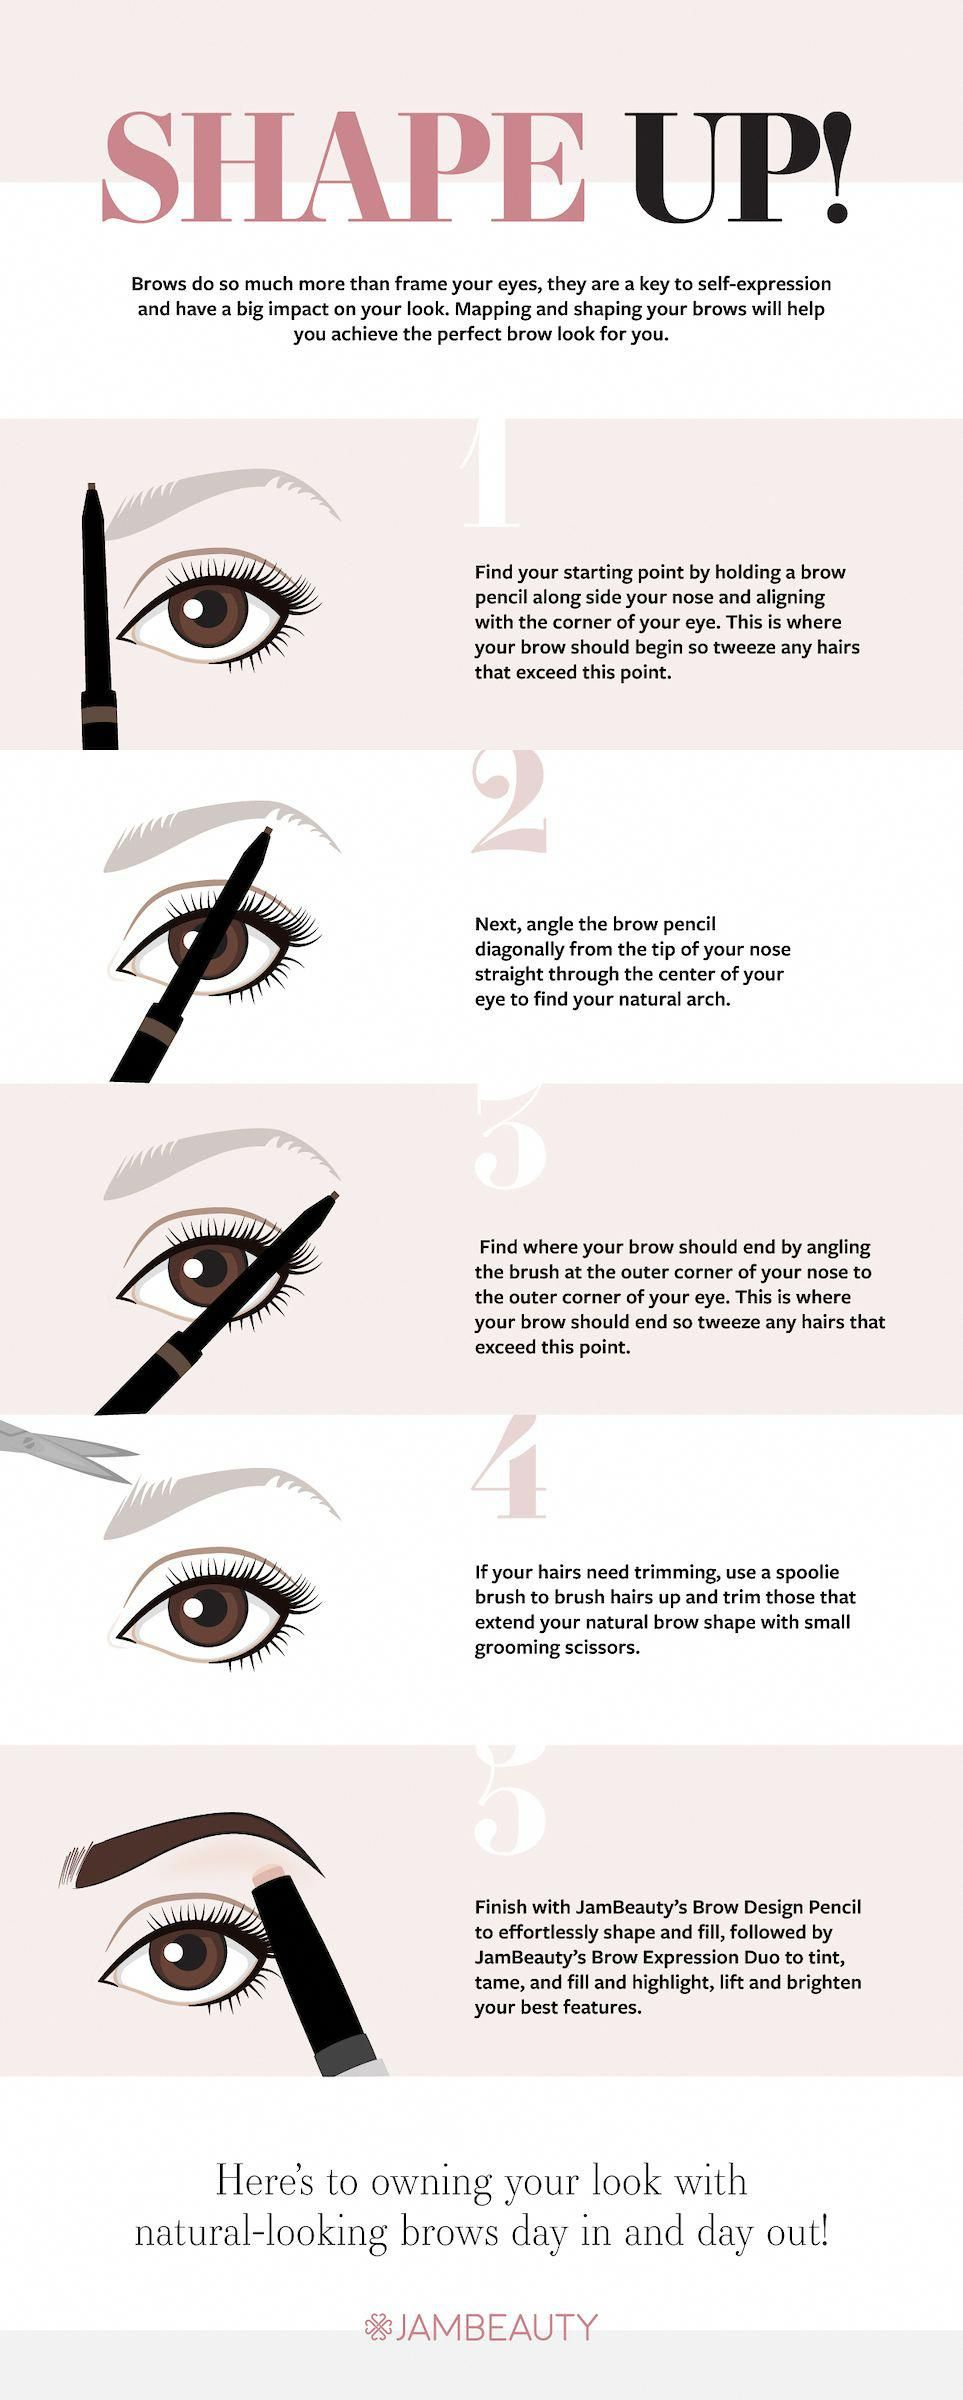 Best Place To Get Eyebrows Done : place, eyebrows, Place, Eyebrows, Products, Eyebrow, Makeup, Brows, 20190509